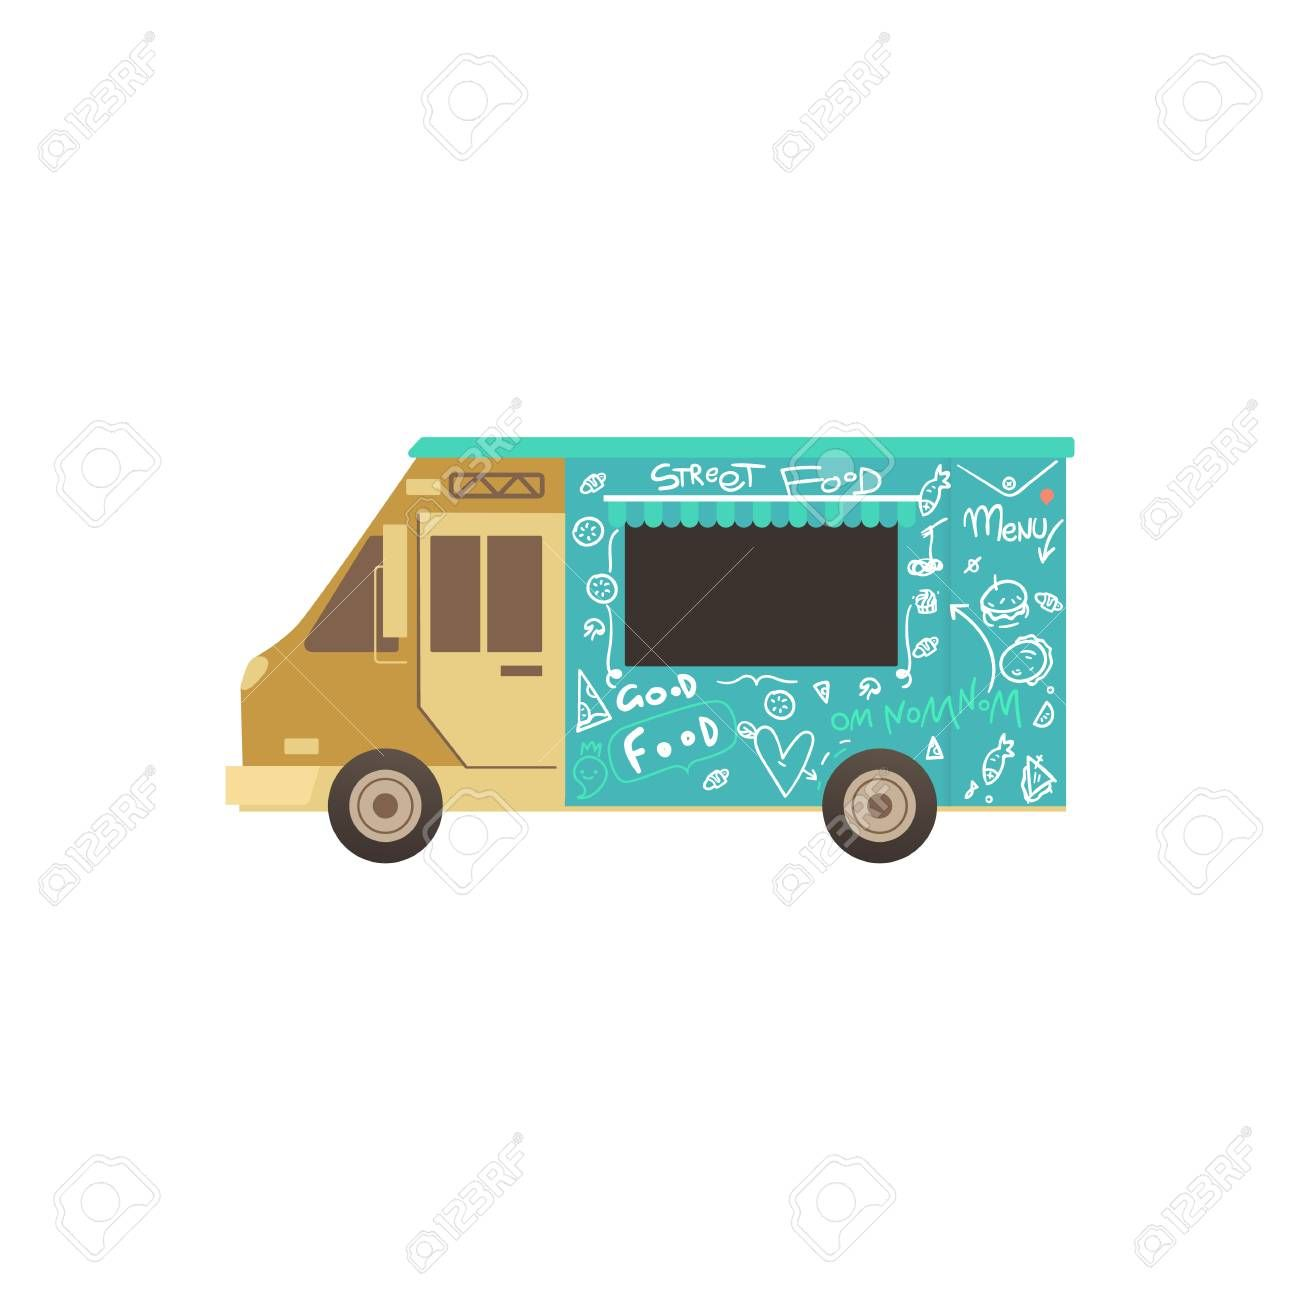 Food Truck Or Van For Fas Delivery Of Street Food Summer Outdoor